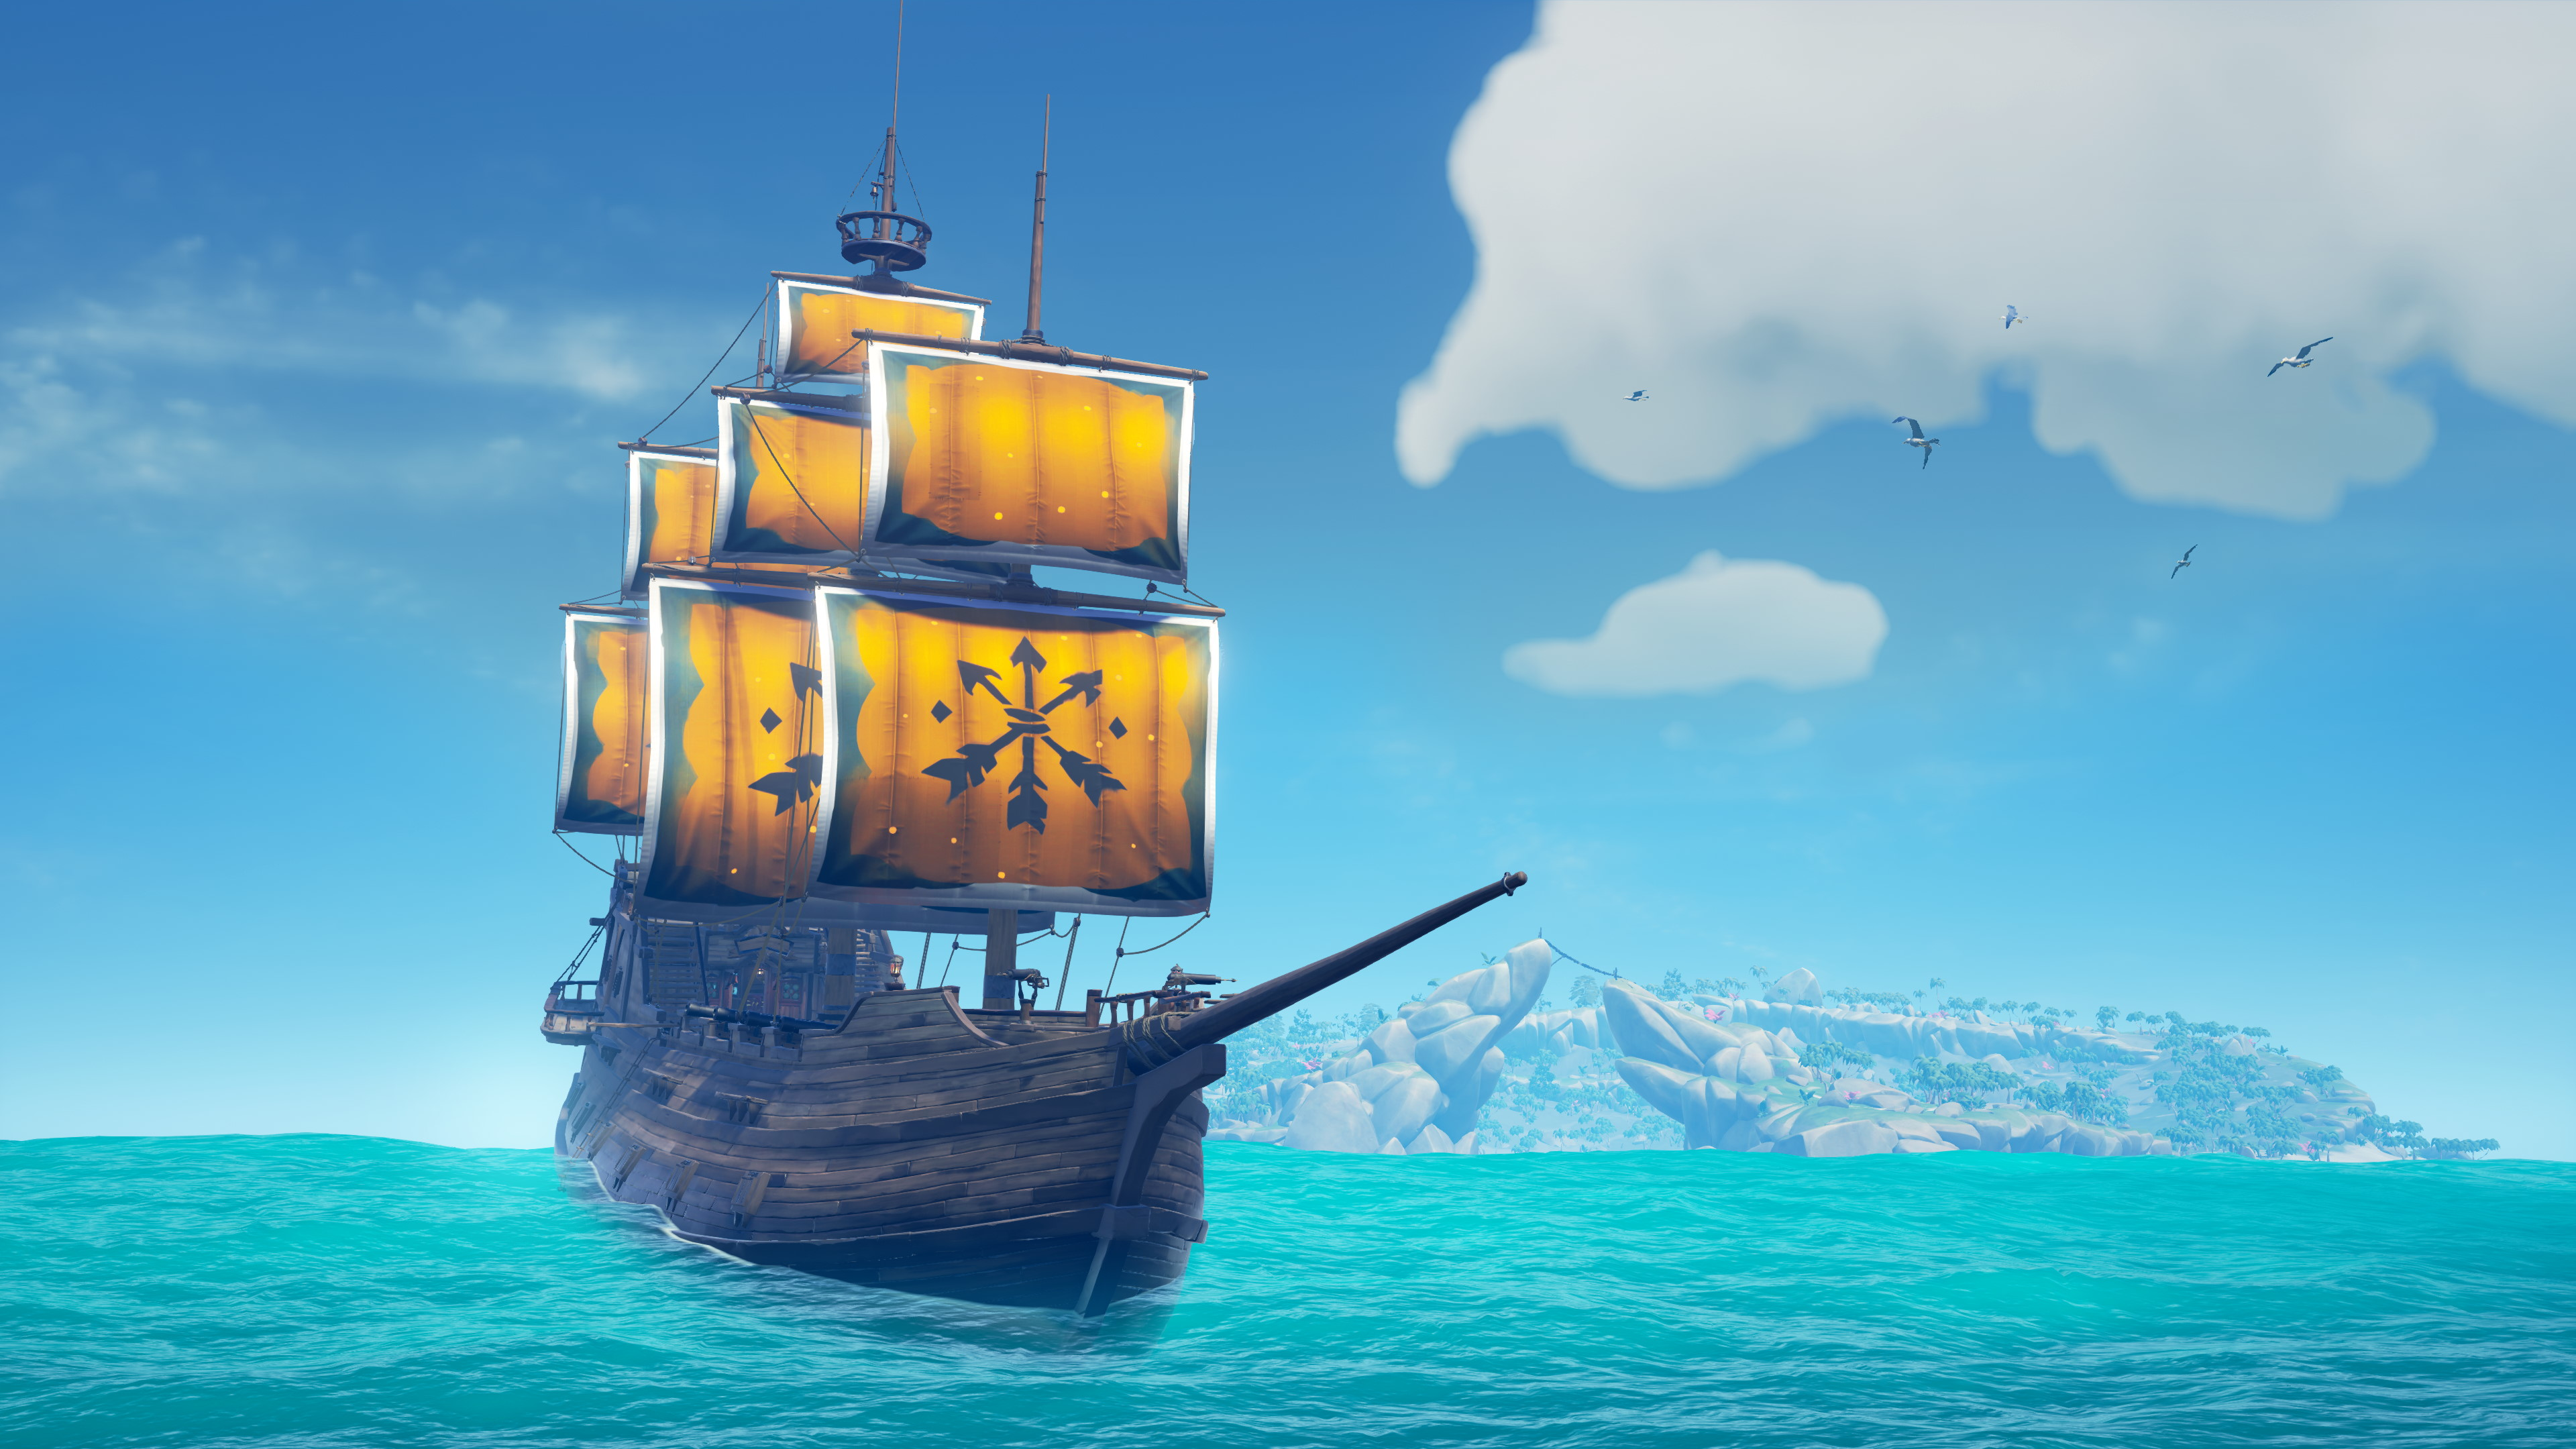 Sea of Thieves is raising funds for cancer research with the swanky new Sails of Union